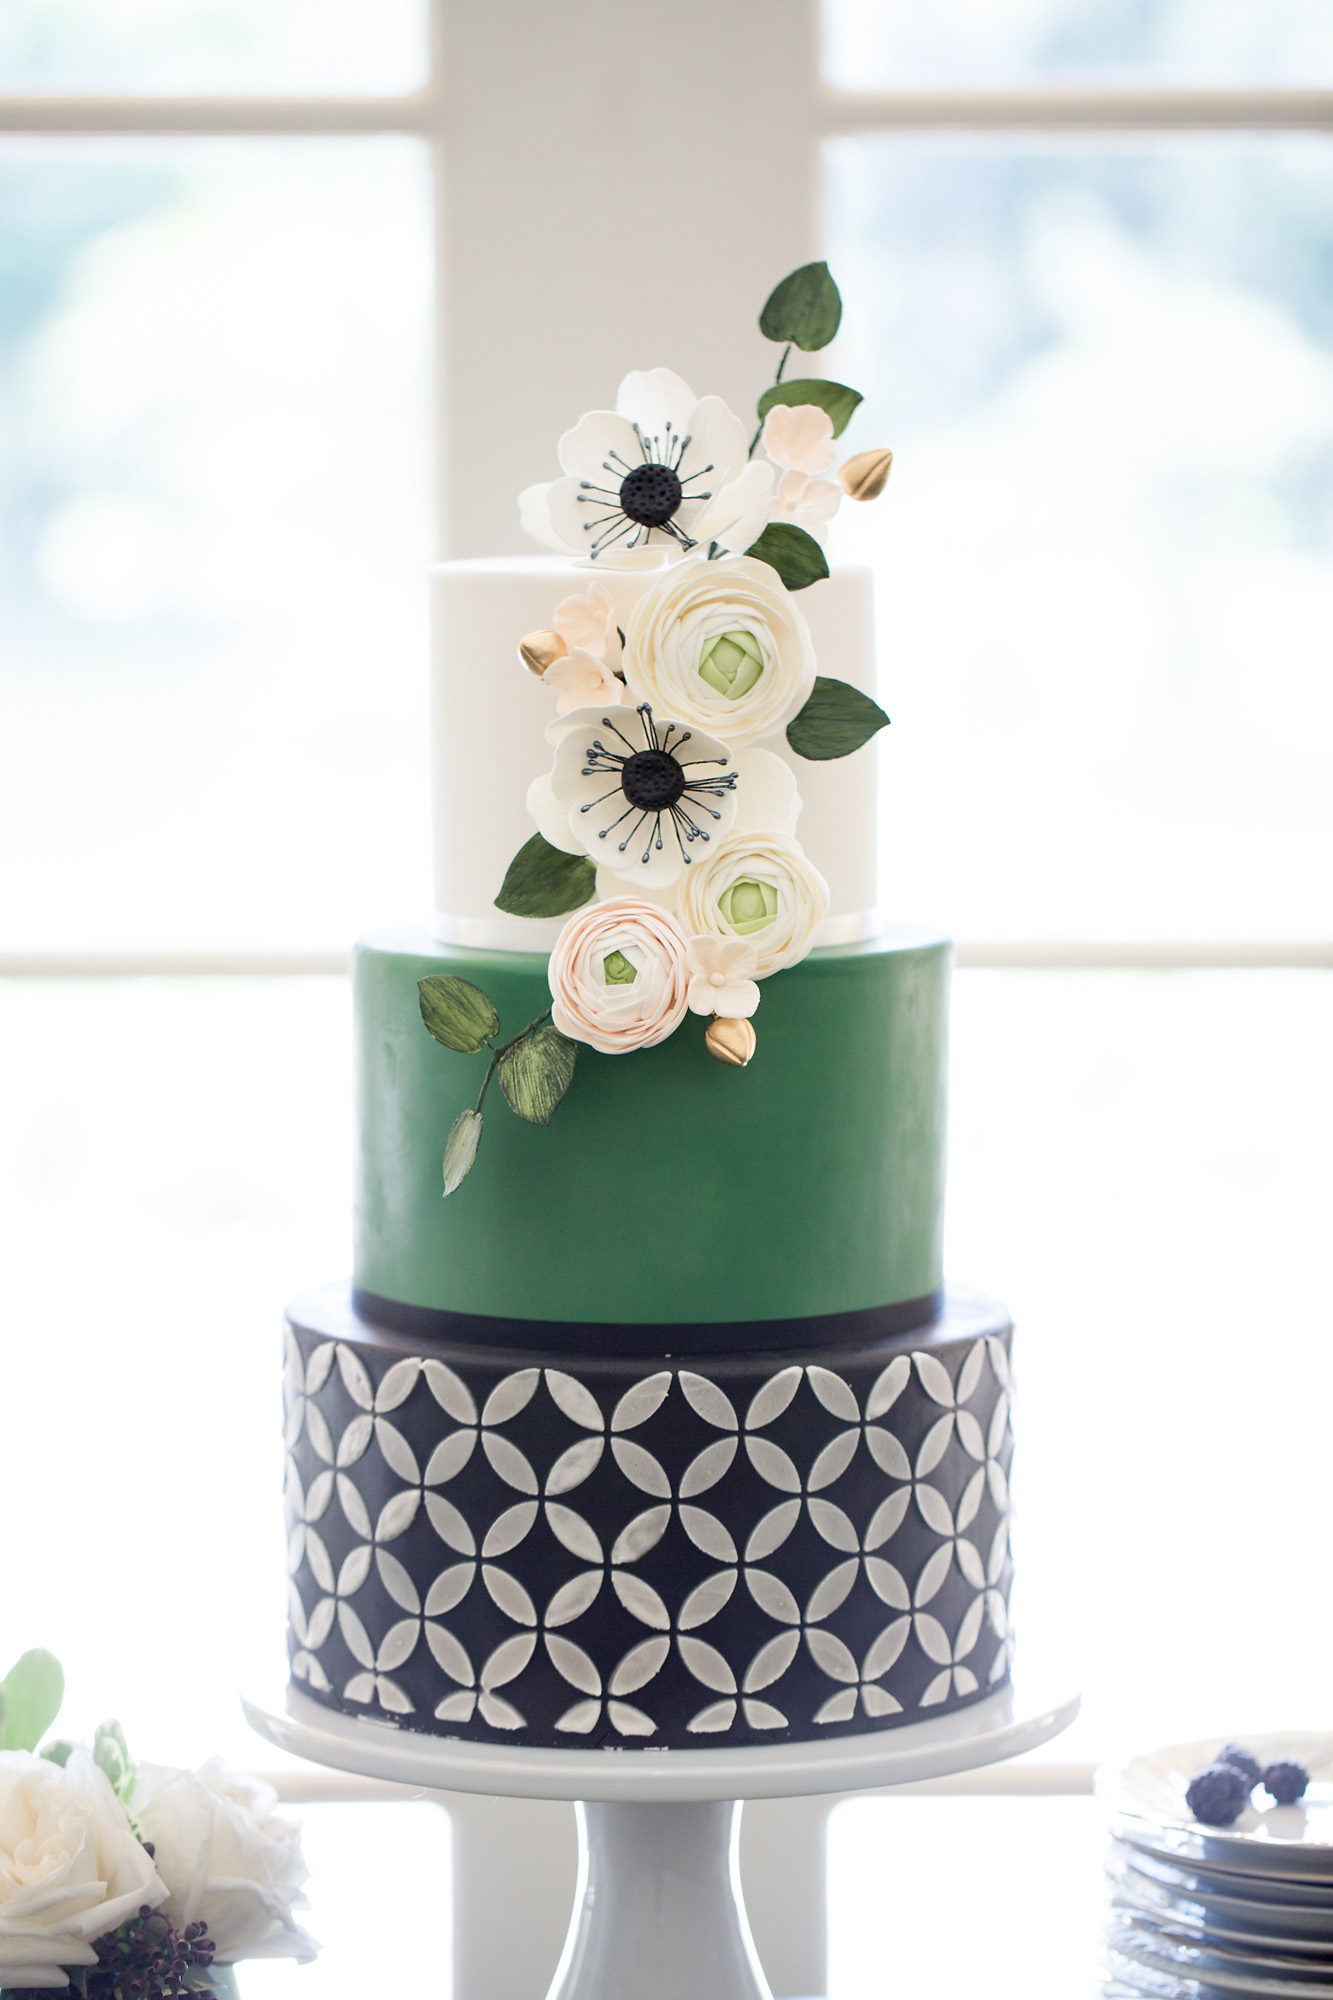 Emerald and Black Geometric Cake